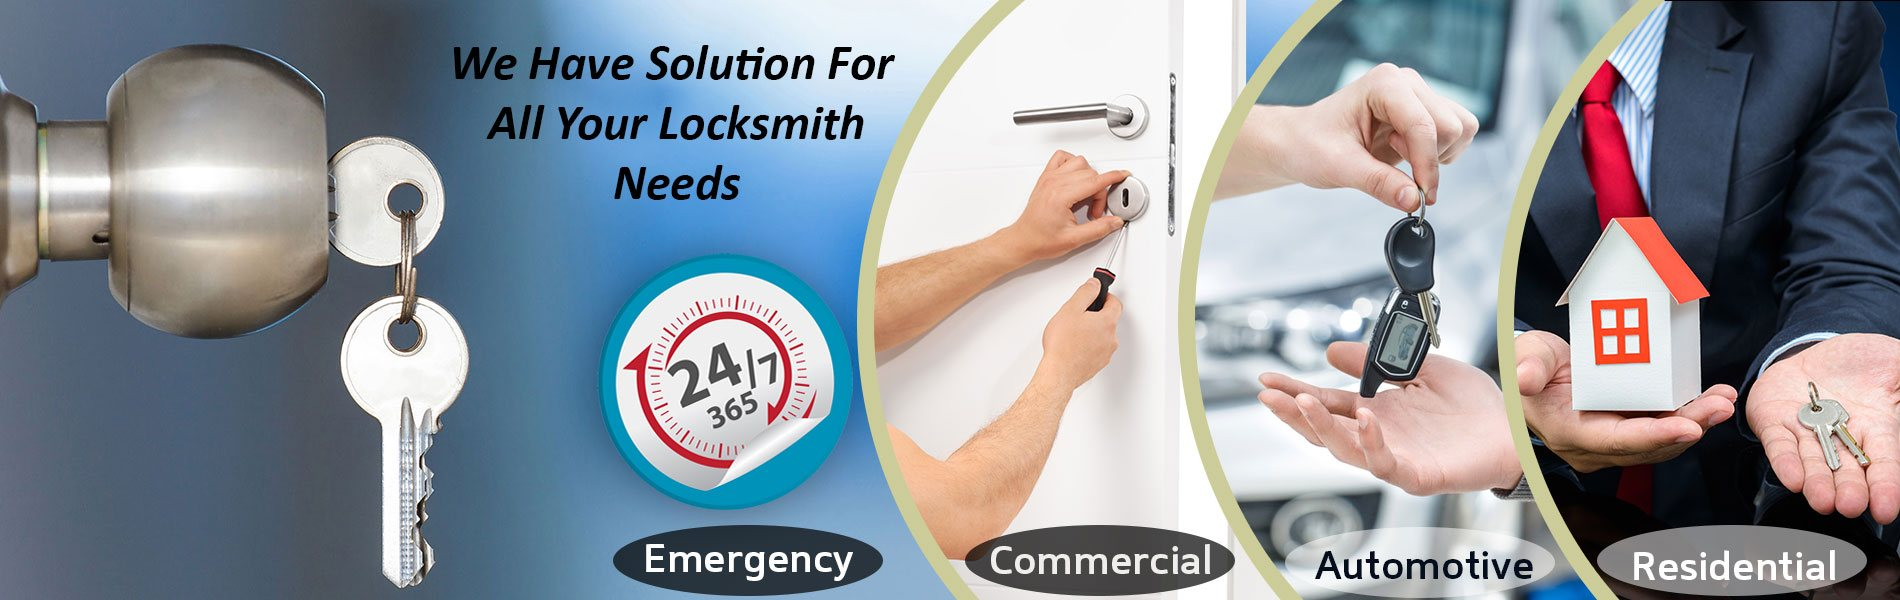 Neighborhood Locksmith Store South Prairie, WA 360-718-9983